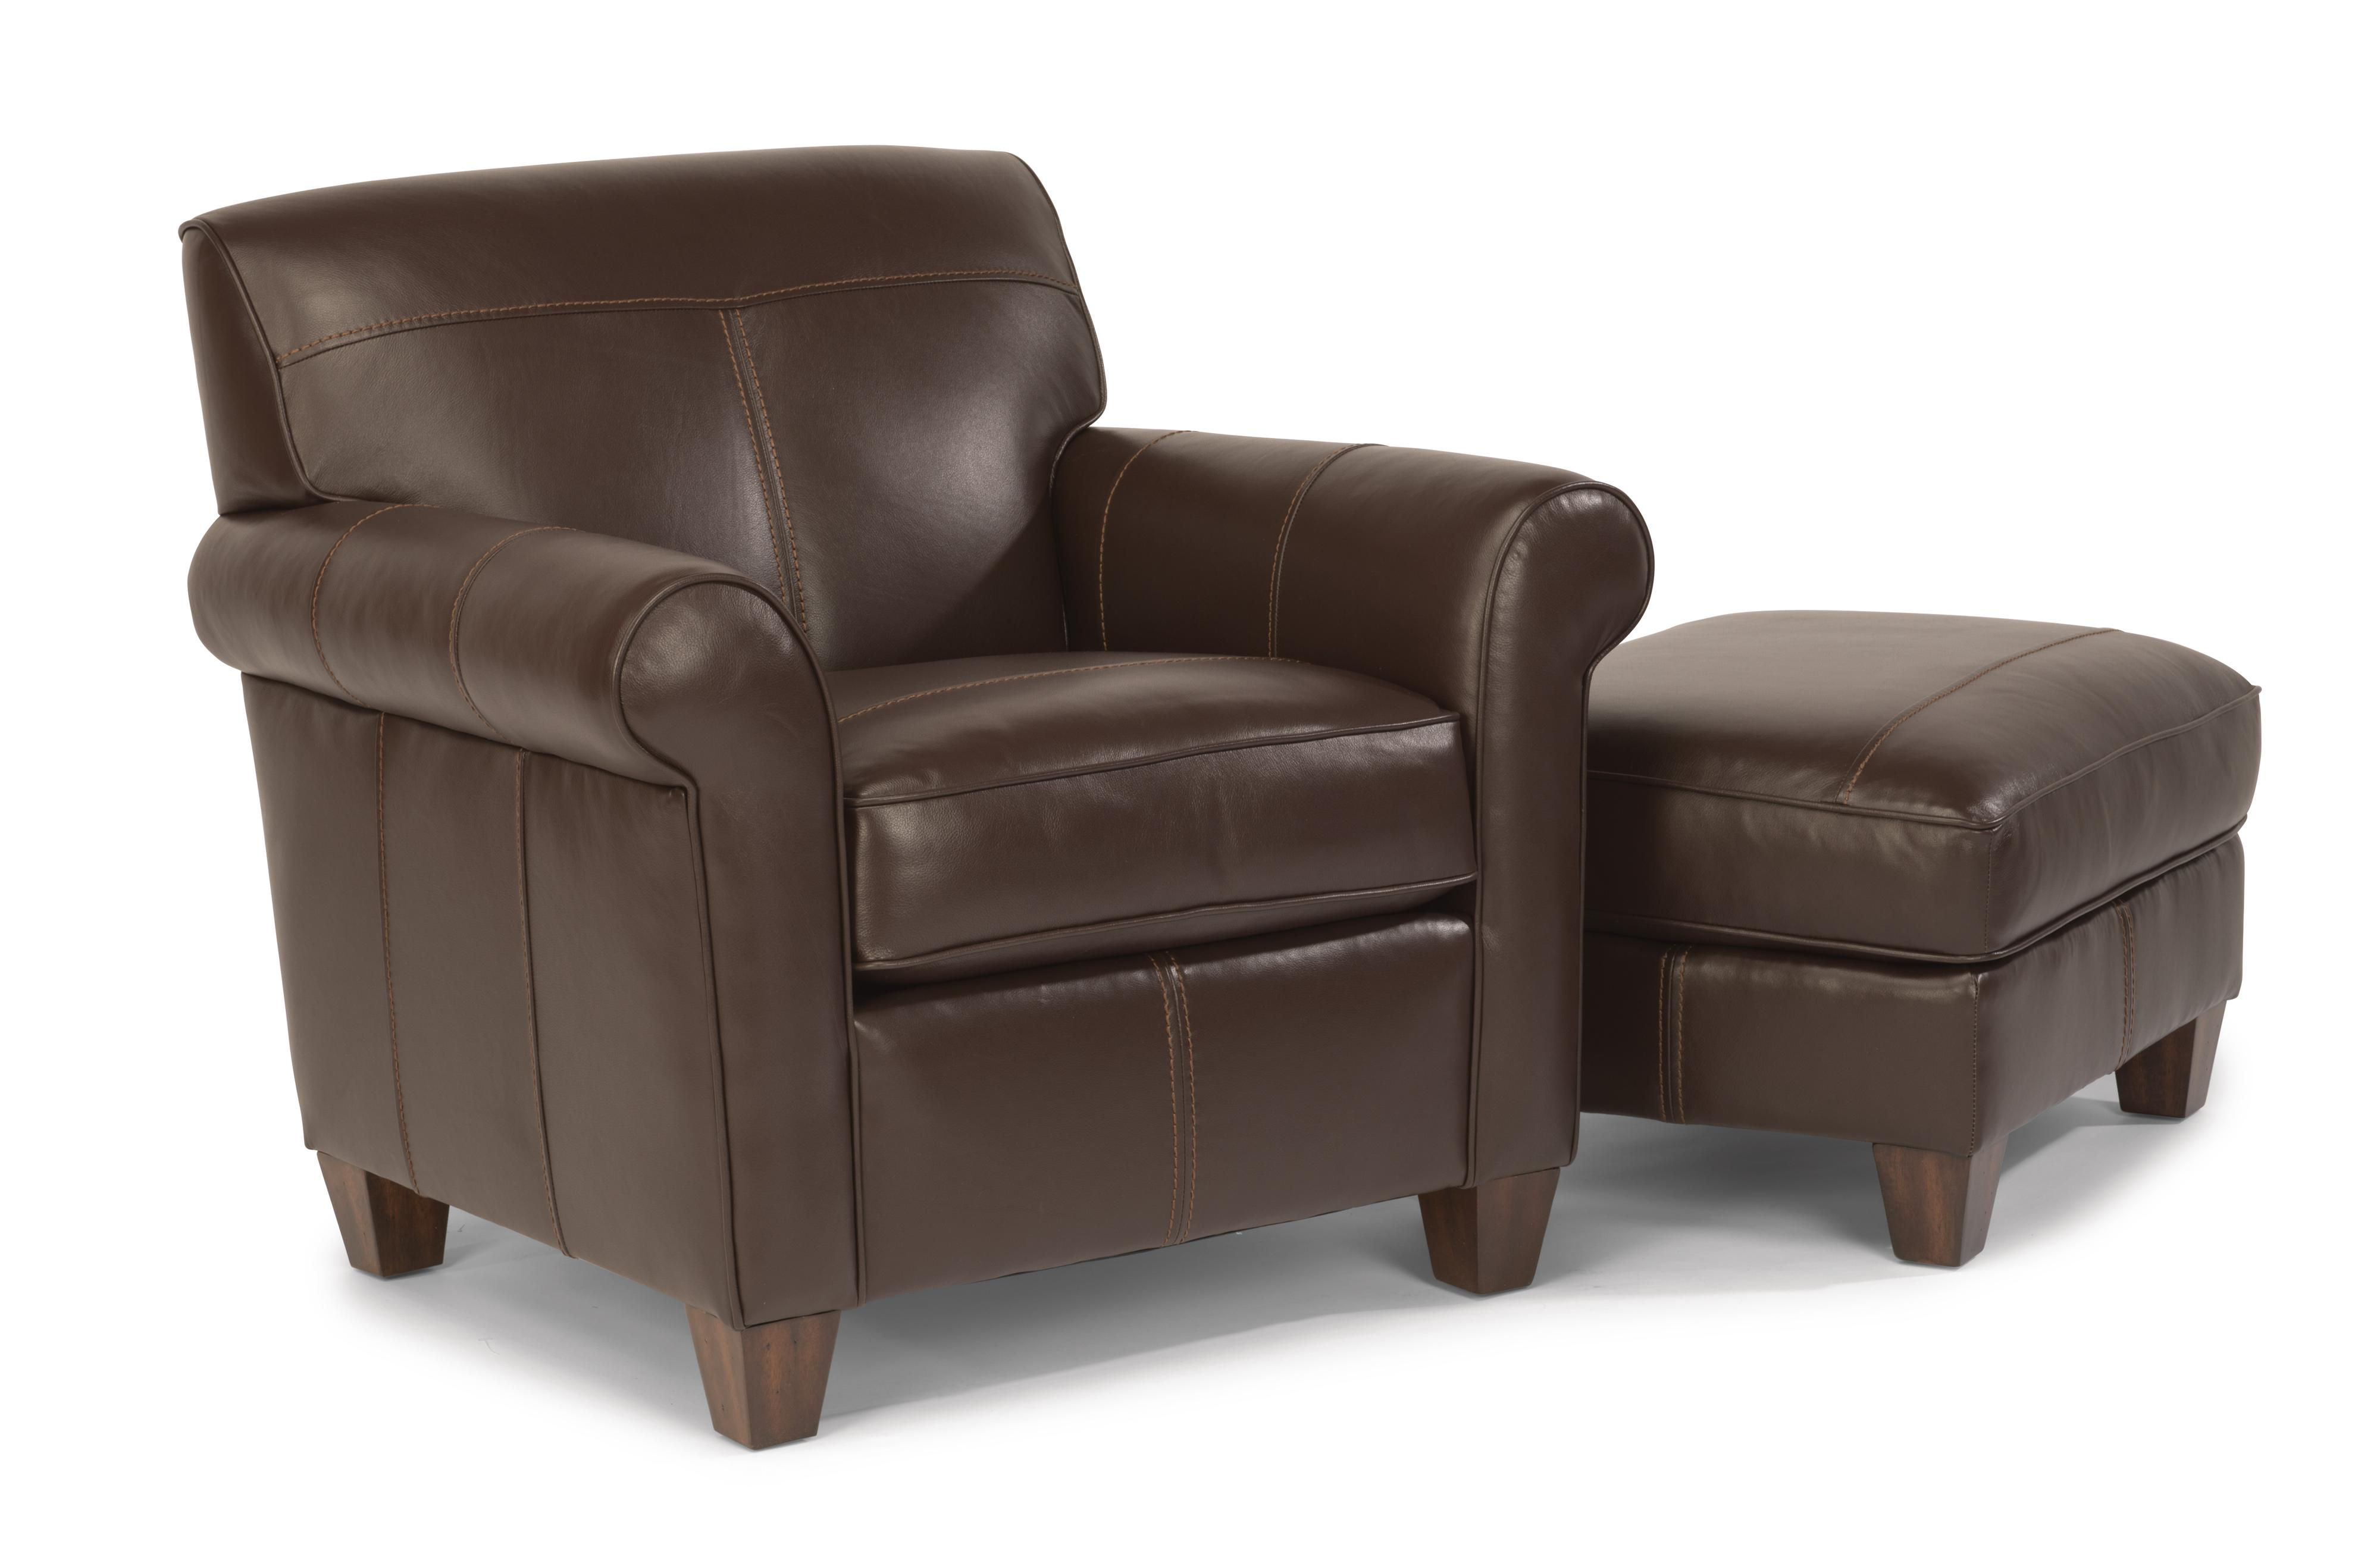 Flexsteel Dana Chair and Ottoman - Item Number: B3990-10+08